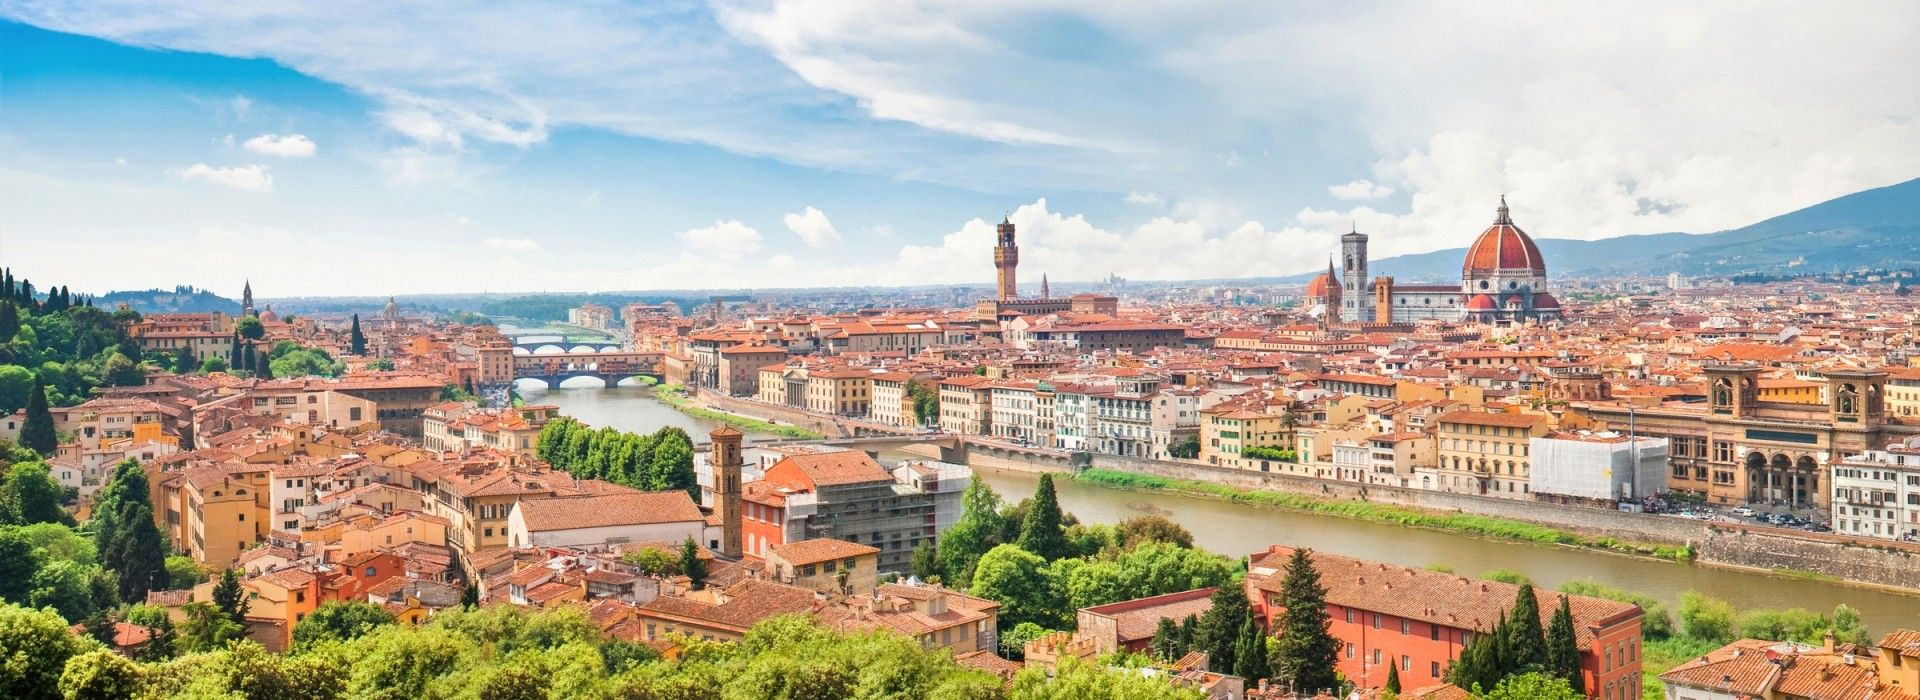 Travelling Florence - Tours and Holiday Packages in Florence